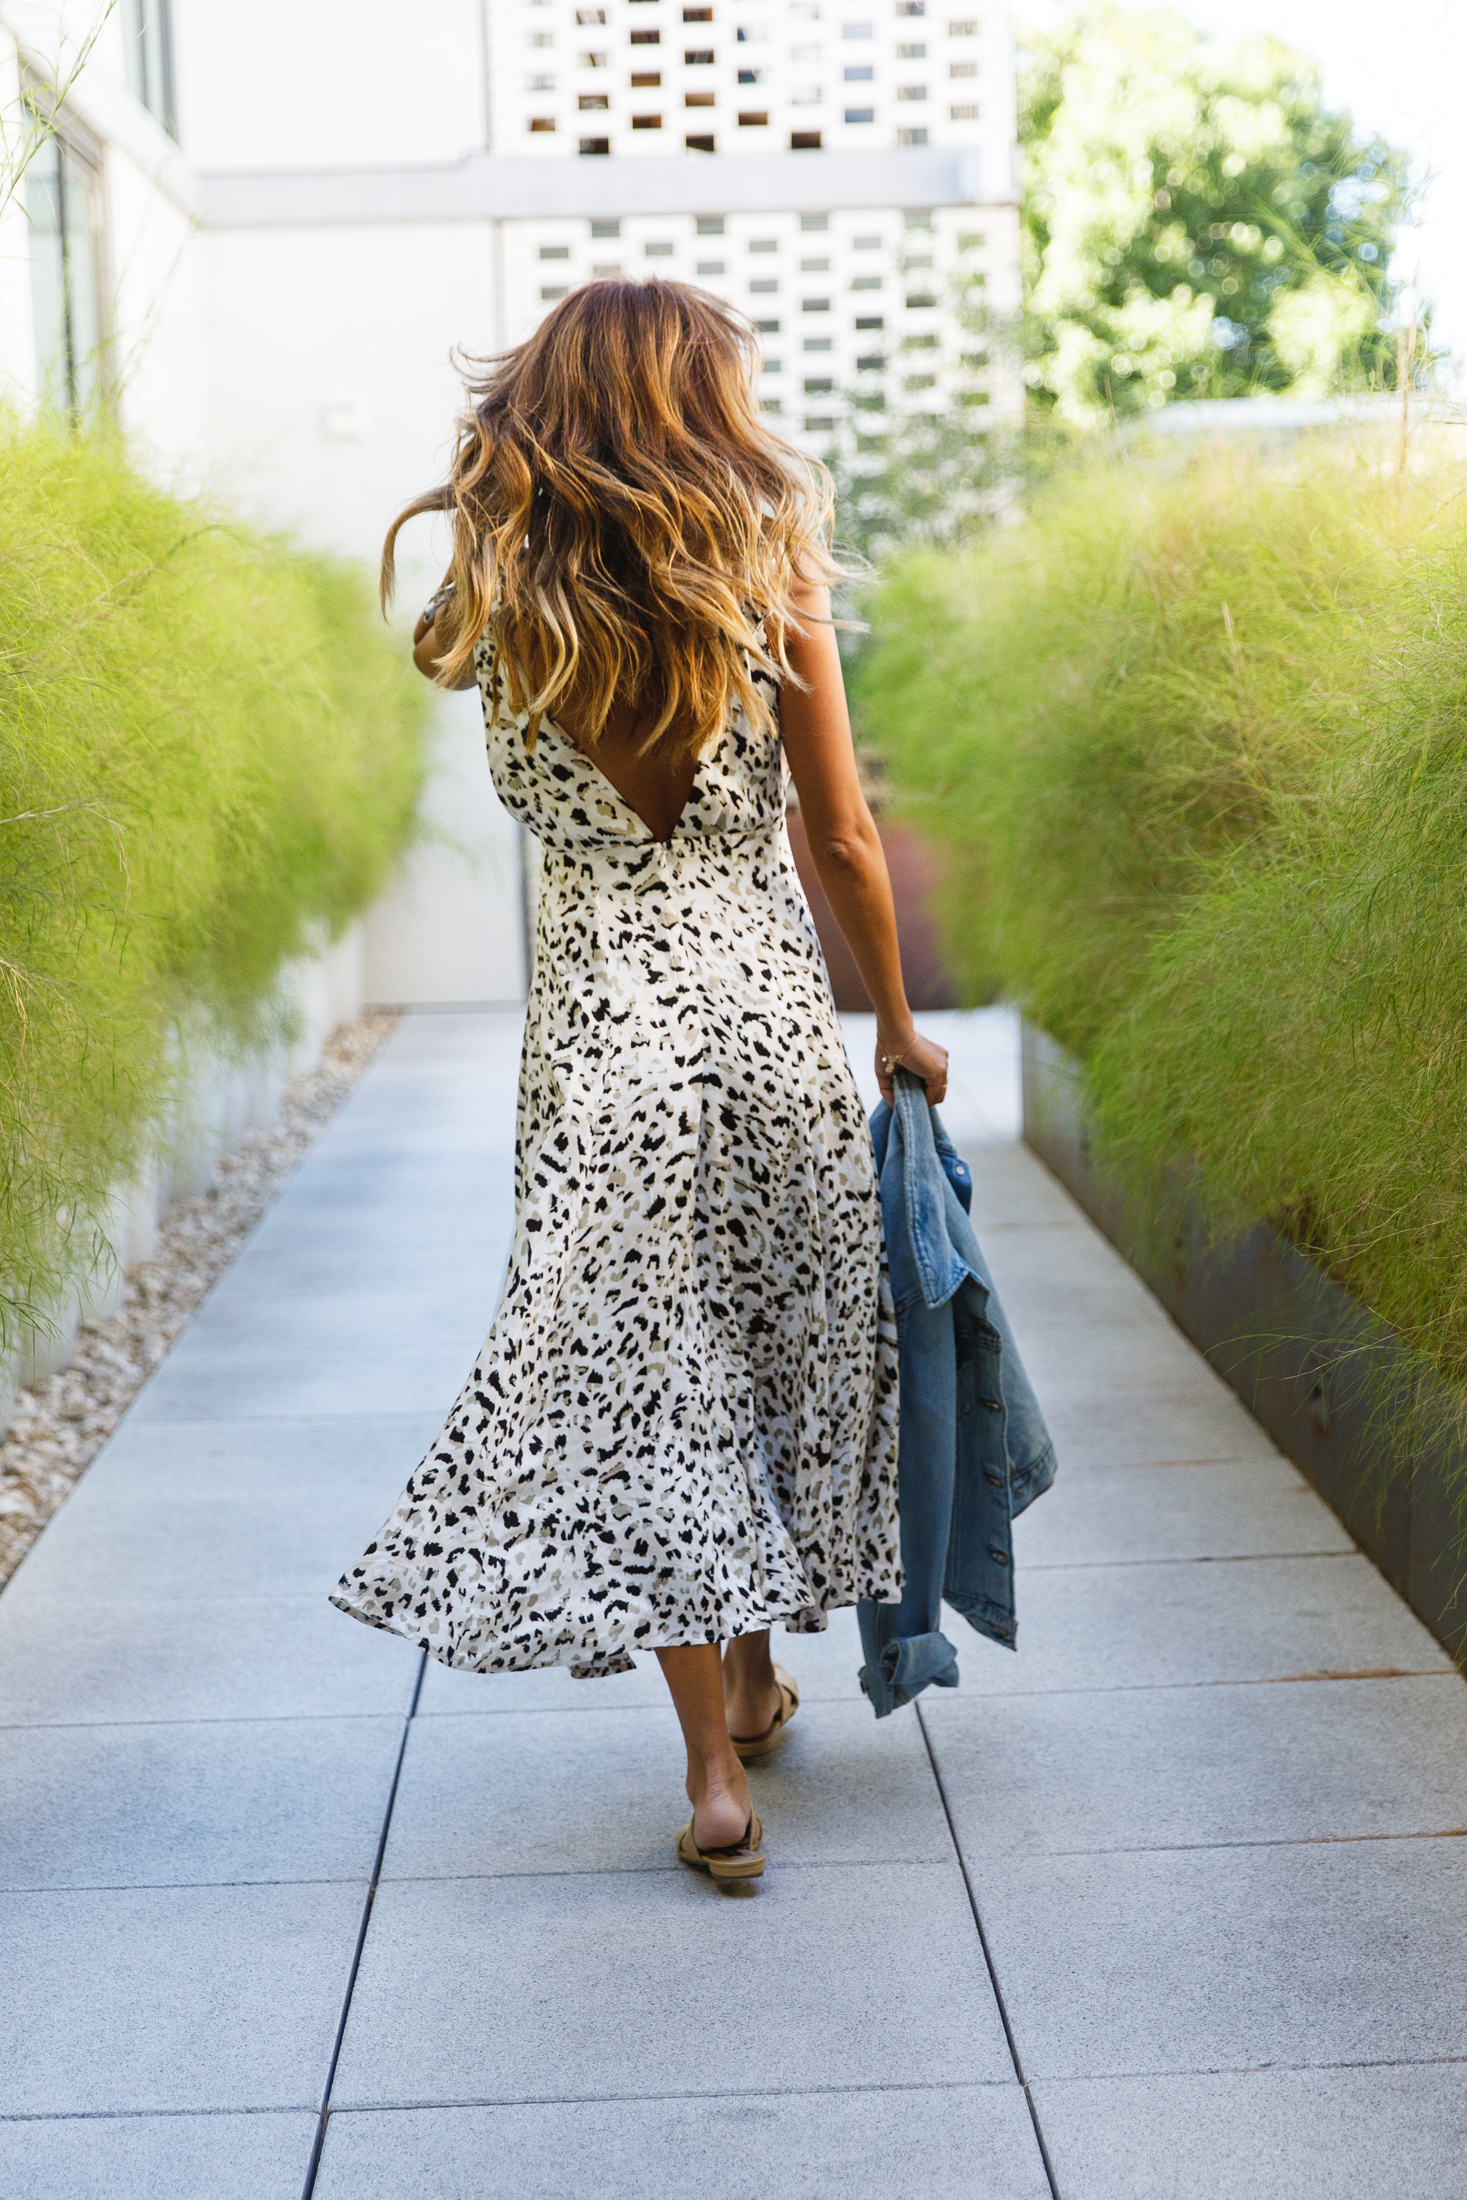 lulus vacation dresses, what to wear in austin, lulus leopard dress, everyday pursuits outfits